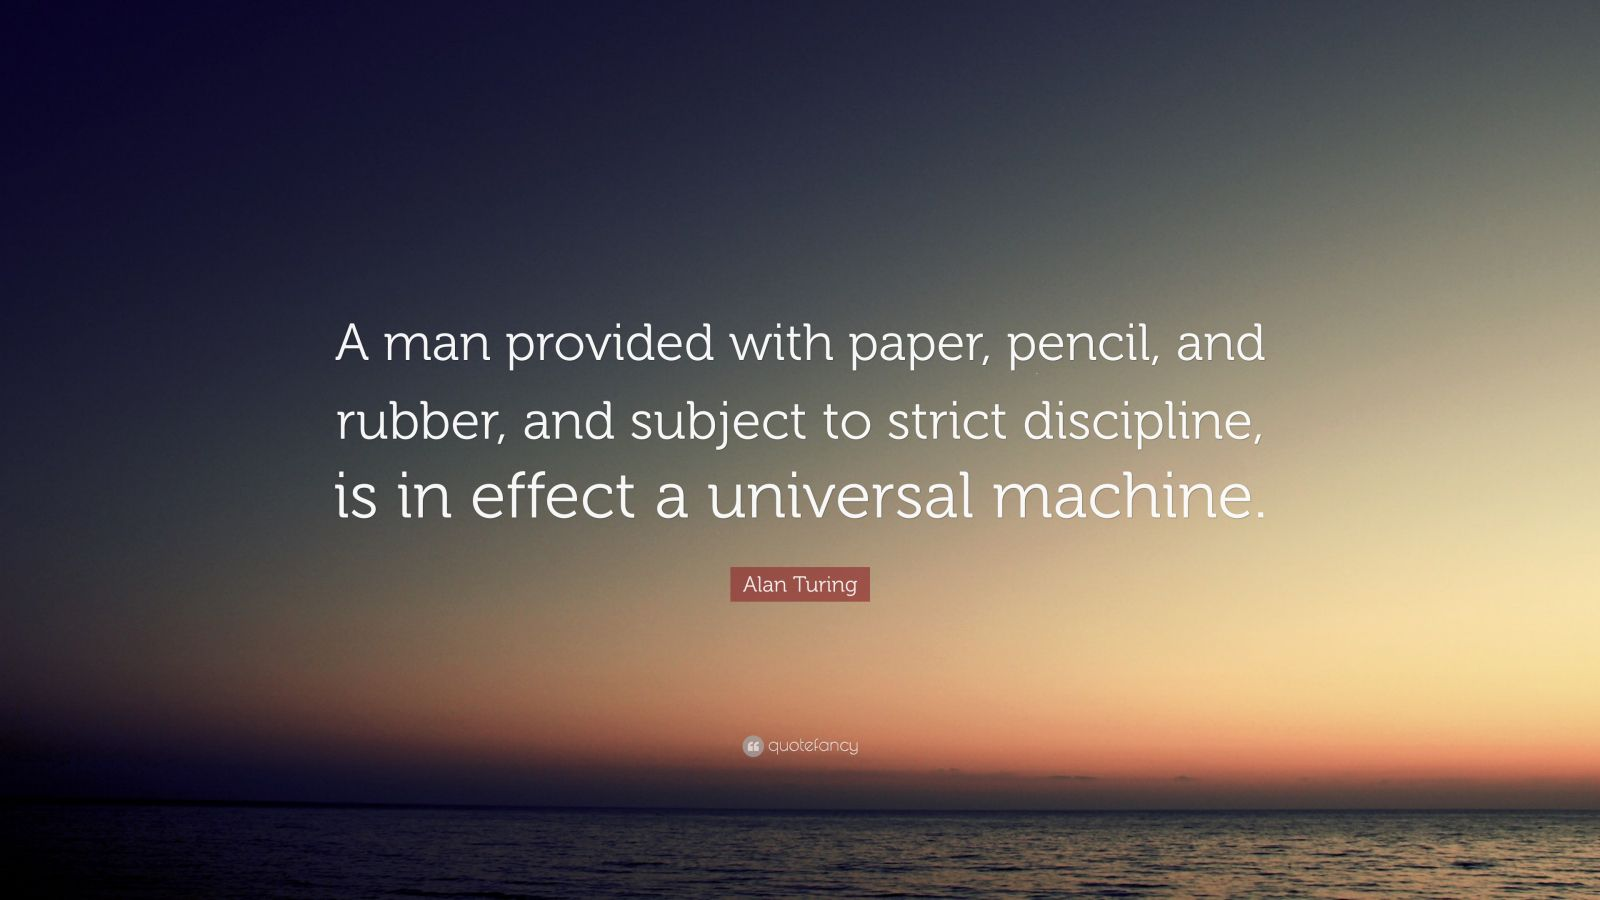 """Alan Turing Quote: """"A man provided with paper, pencil, and rubber, and subject to strict discipline, is in effect a universal machine."""""""